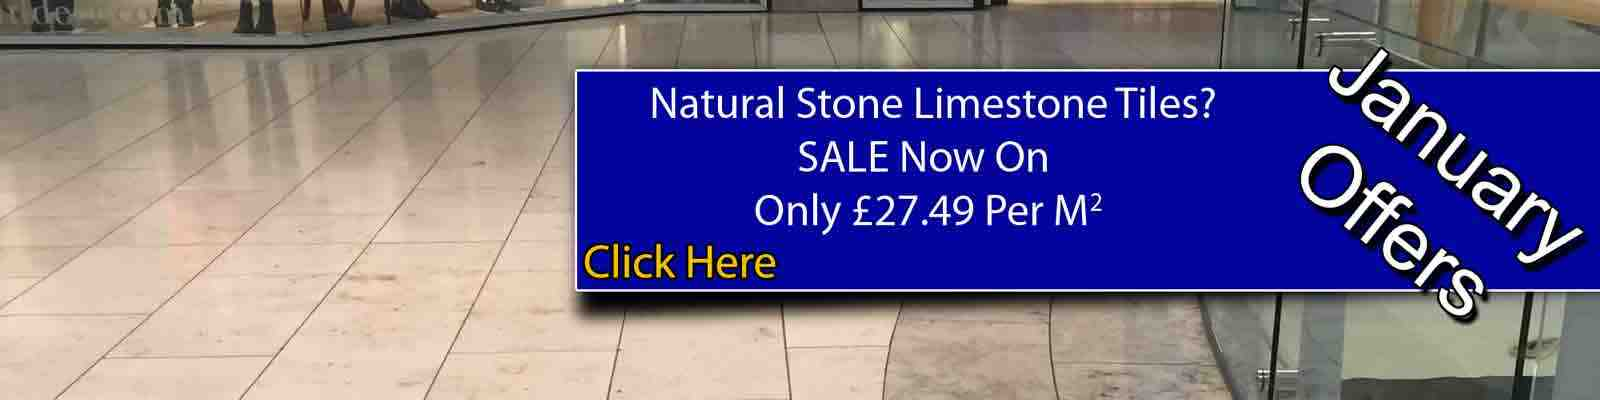 Limestone Prices for January